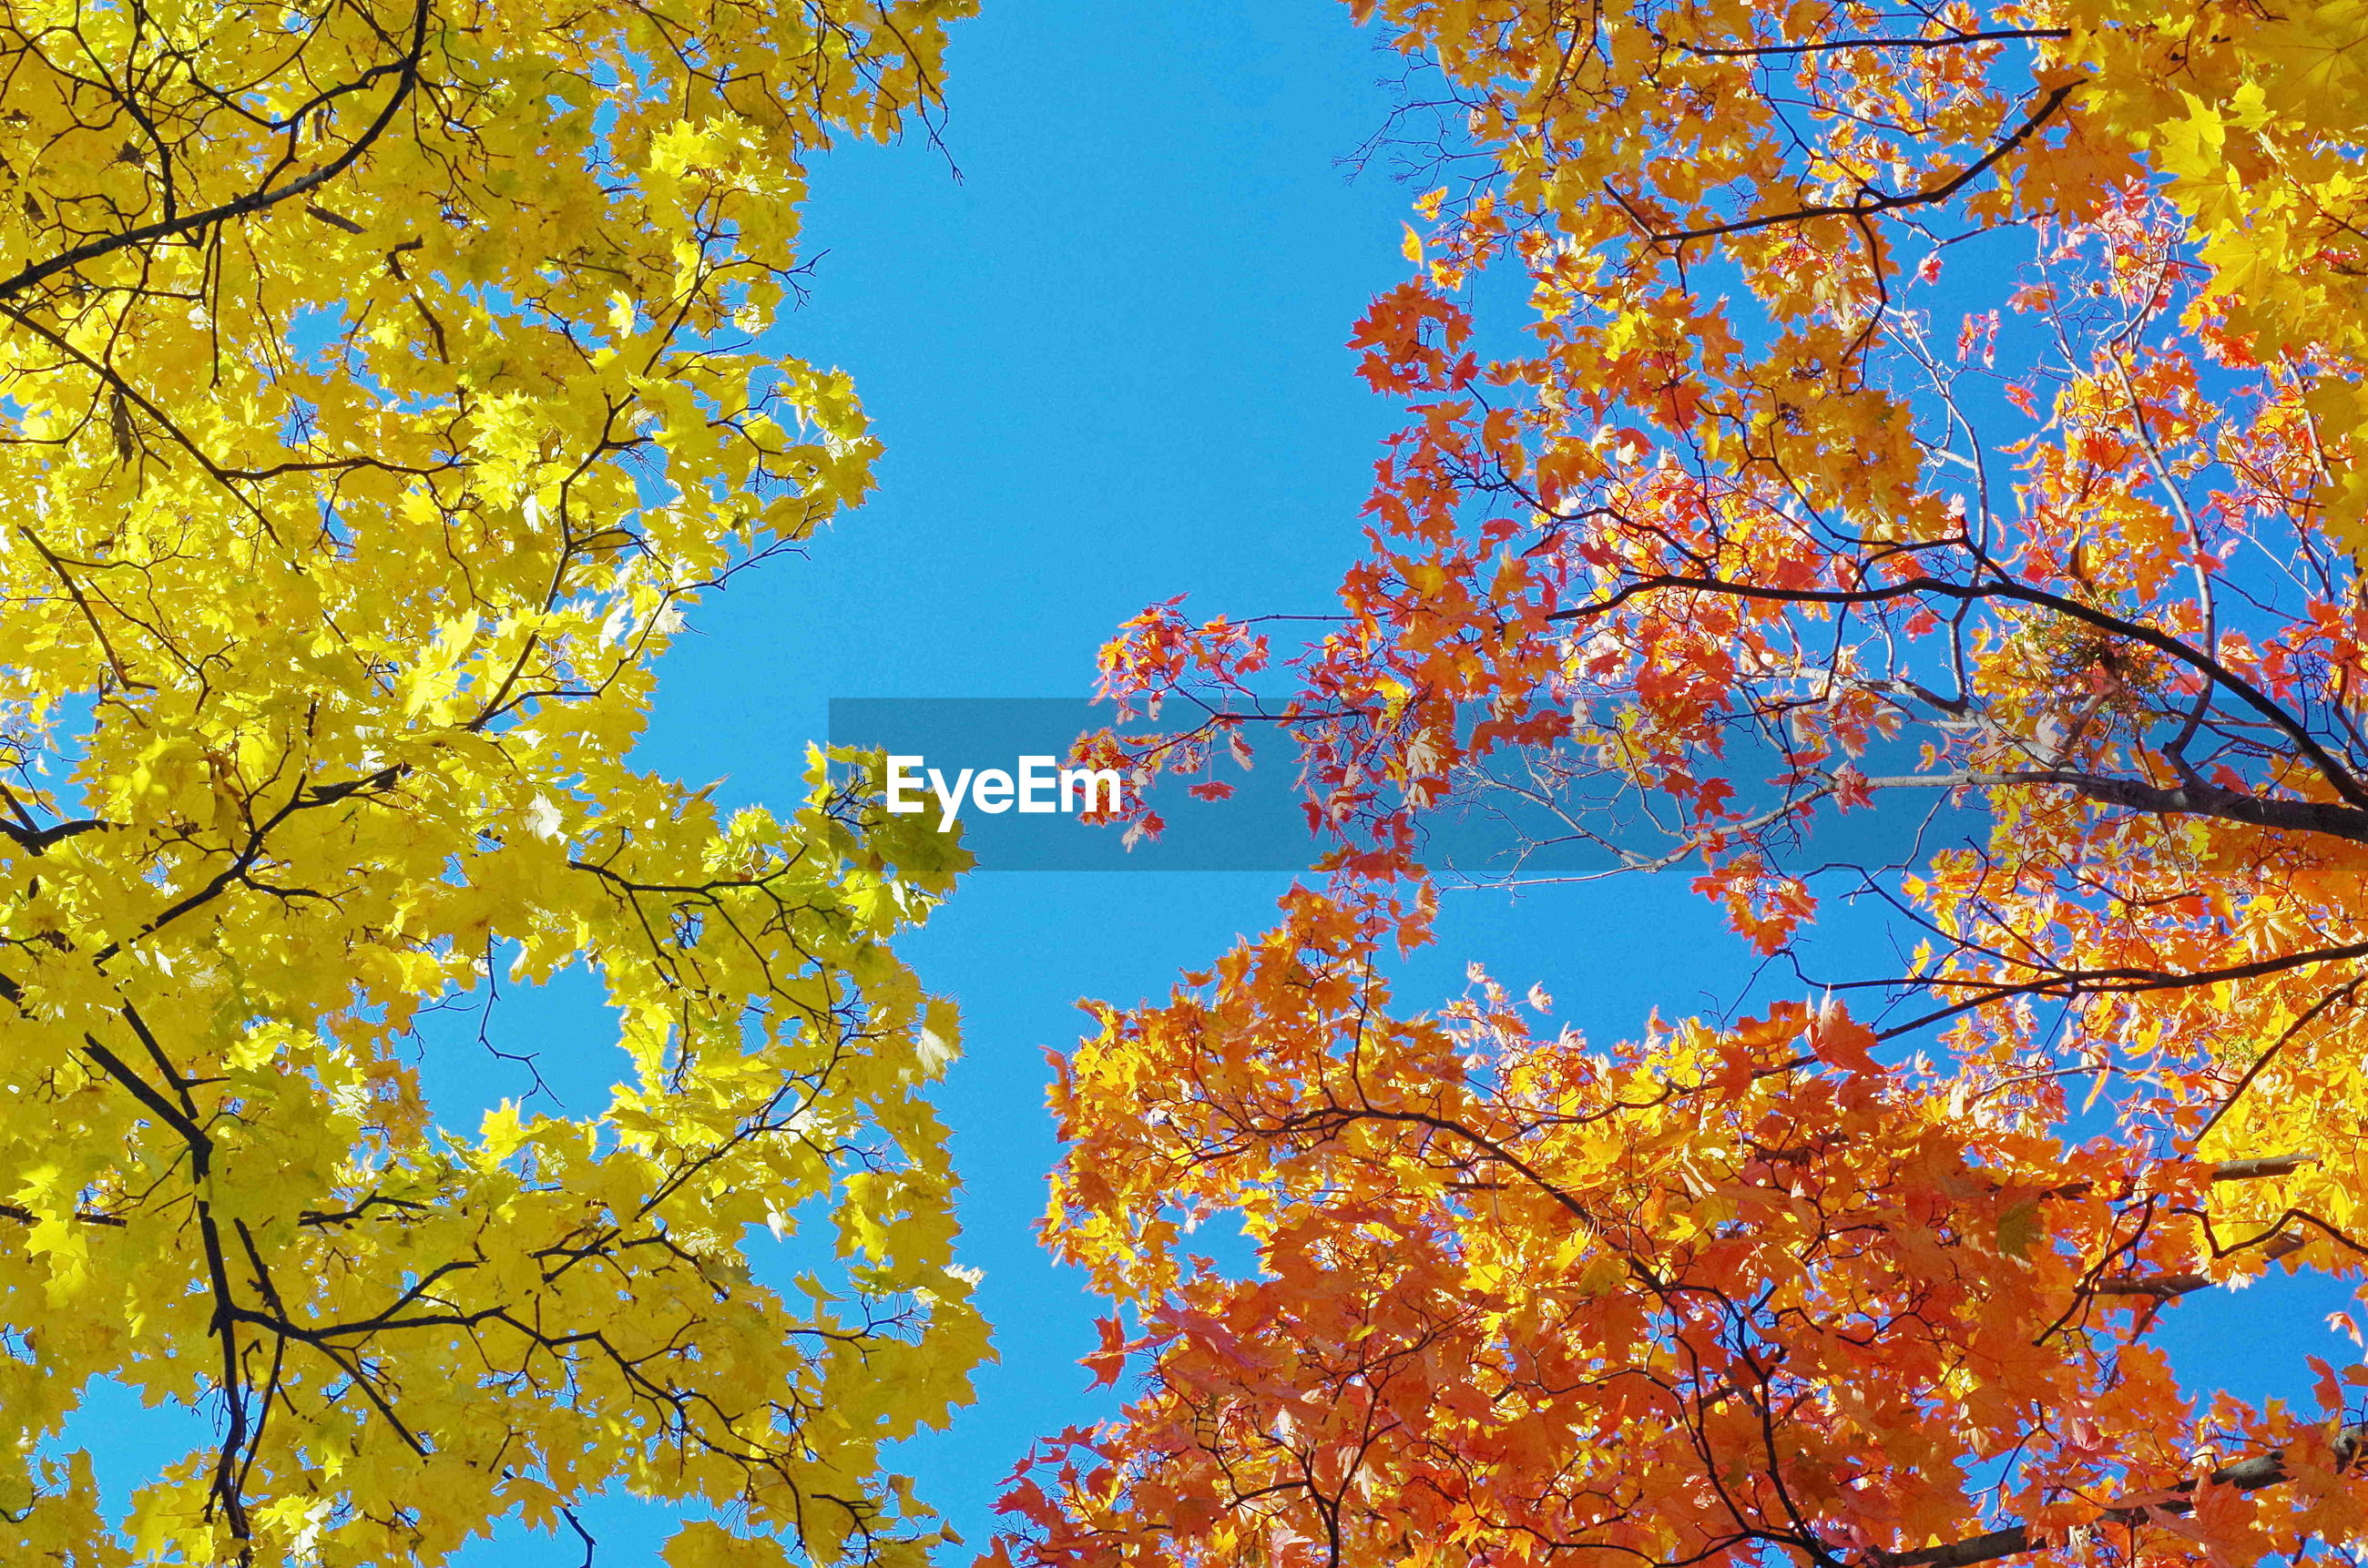 tree, autumn, nature, yellow, branch, beauty in nature, leaf, change, growth, blue, outdoors, day, maple tree, clear sky, low angle view, no people, backgrounds, multi colored, sky, close-up, freshness